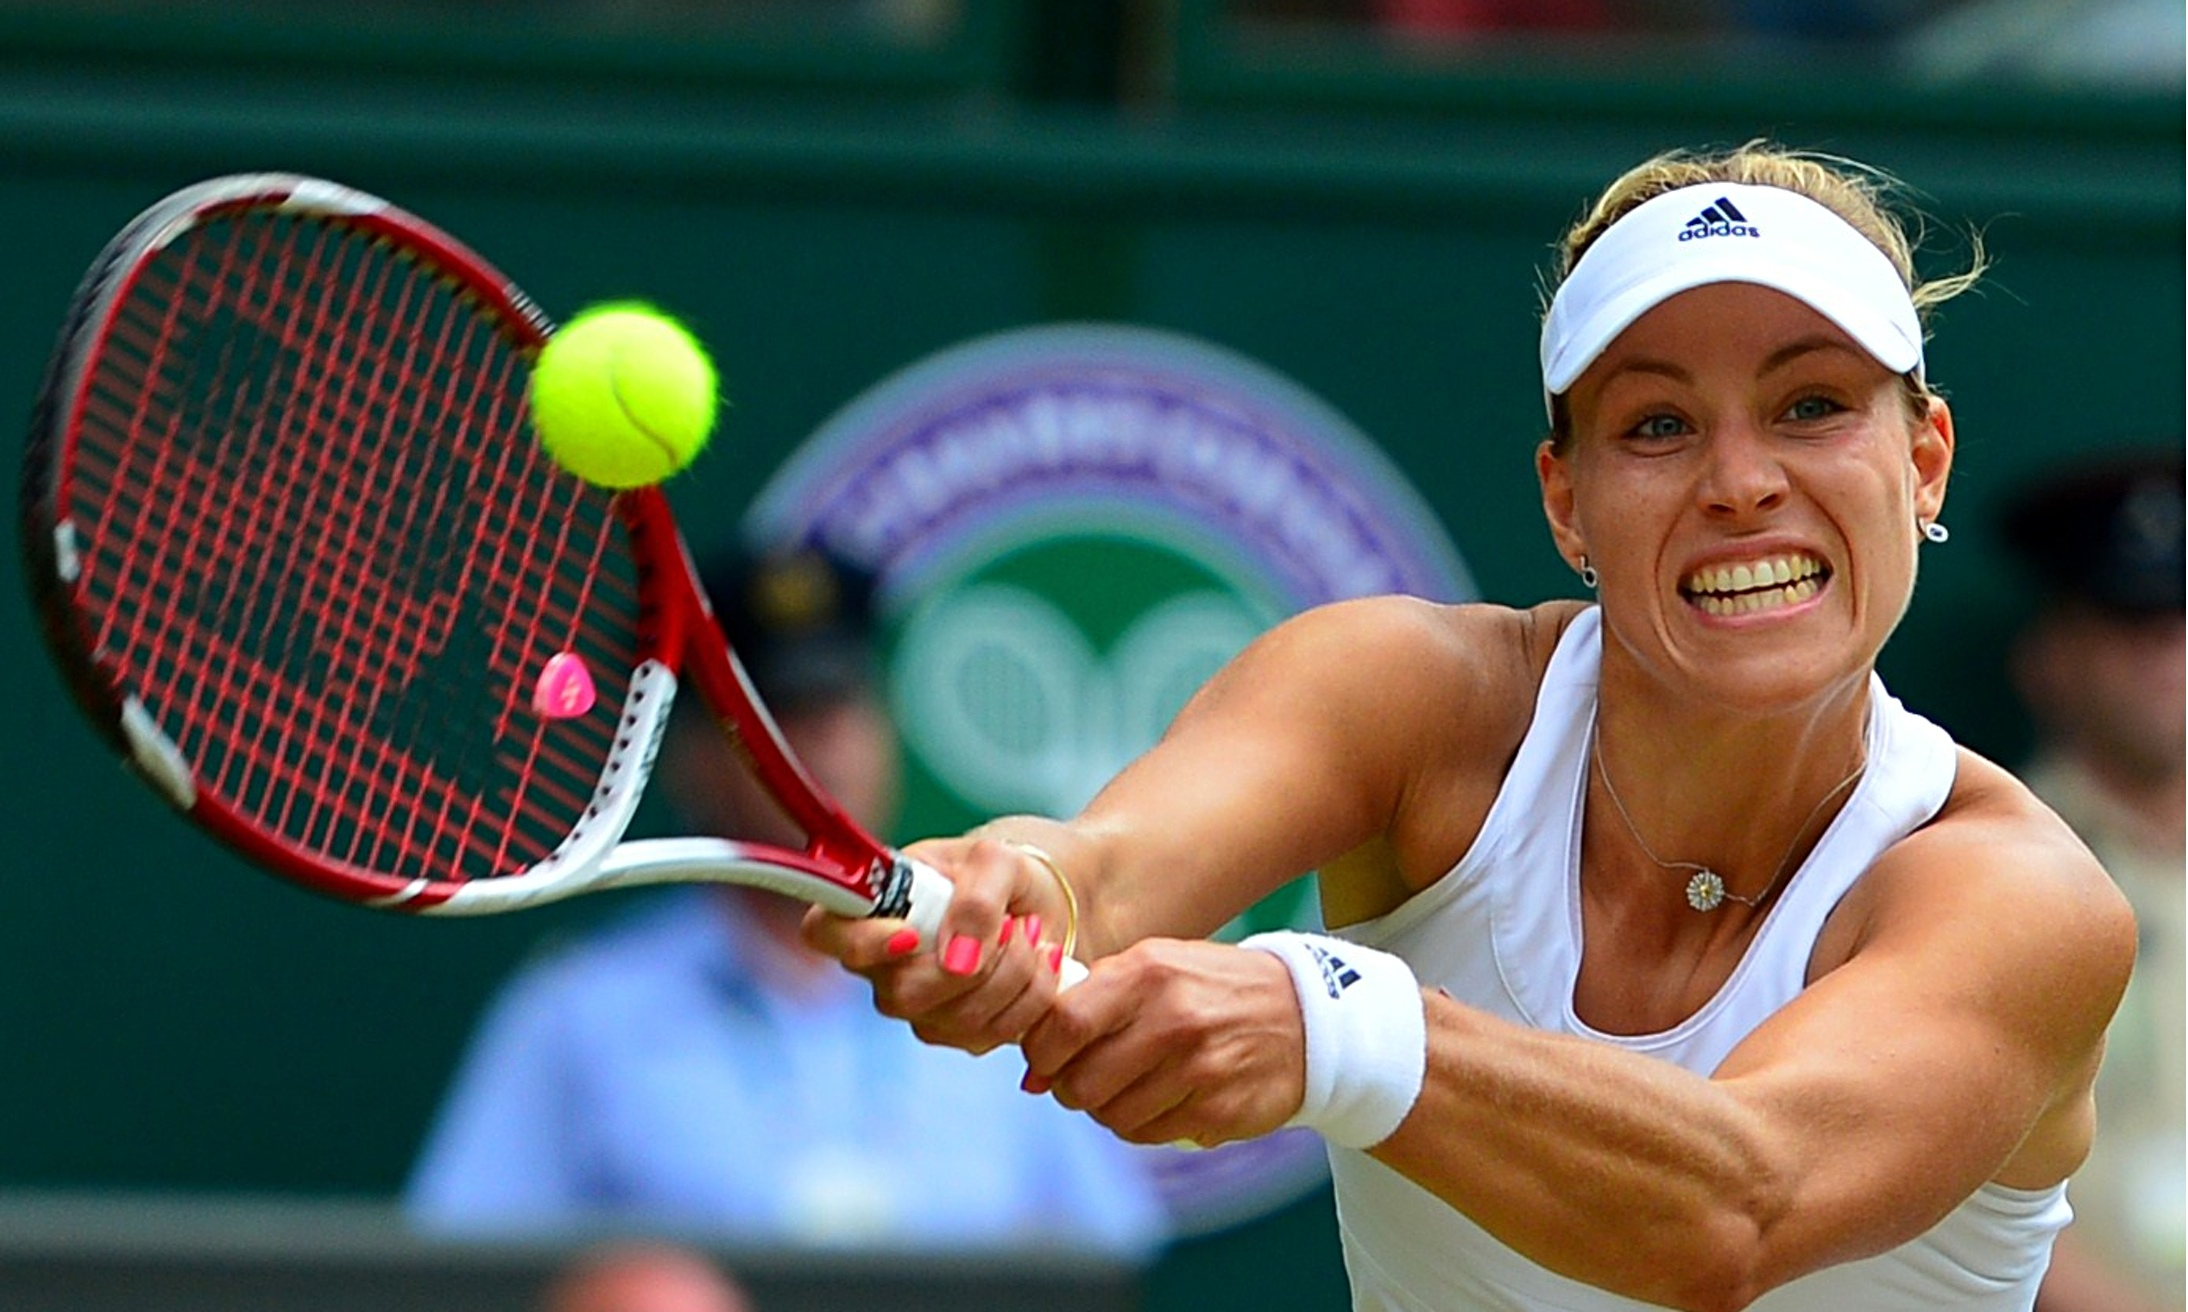 Maria Sharapova knocked out of Wimbledon by Angelique Kerber ...